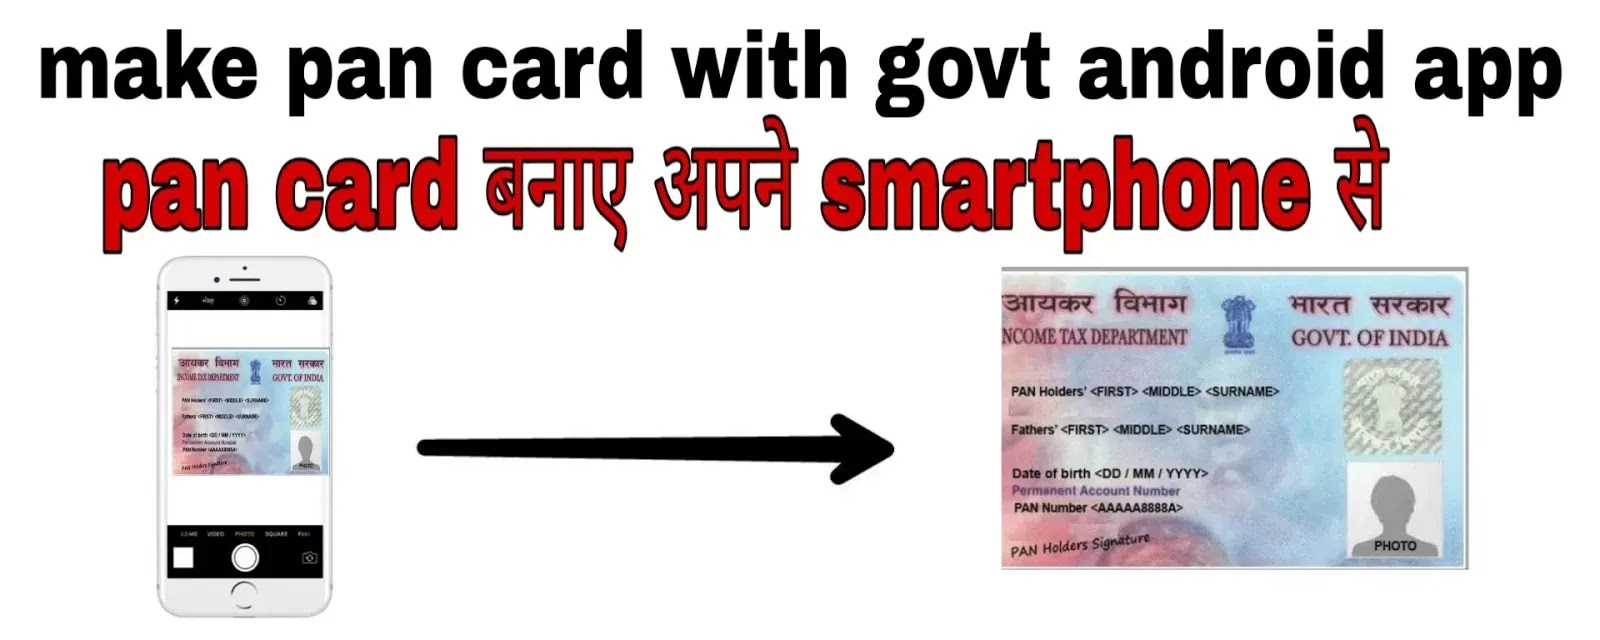 Apply-pan-card-govt-official-app-smartphone